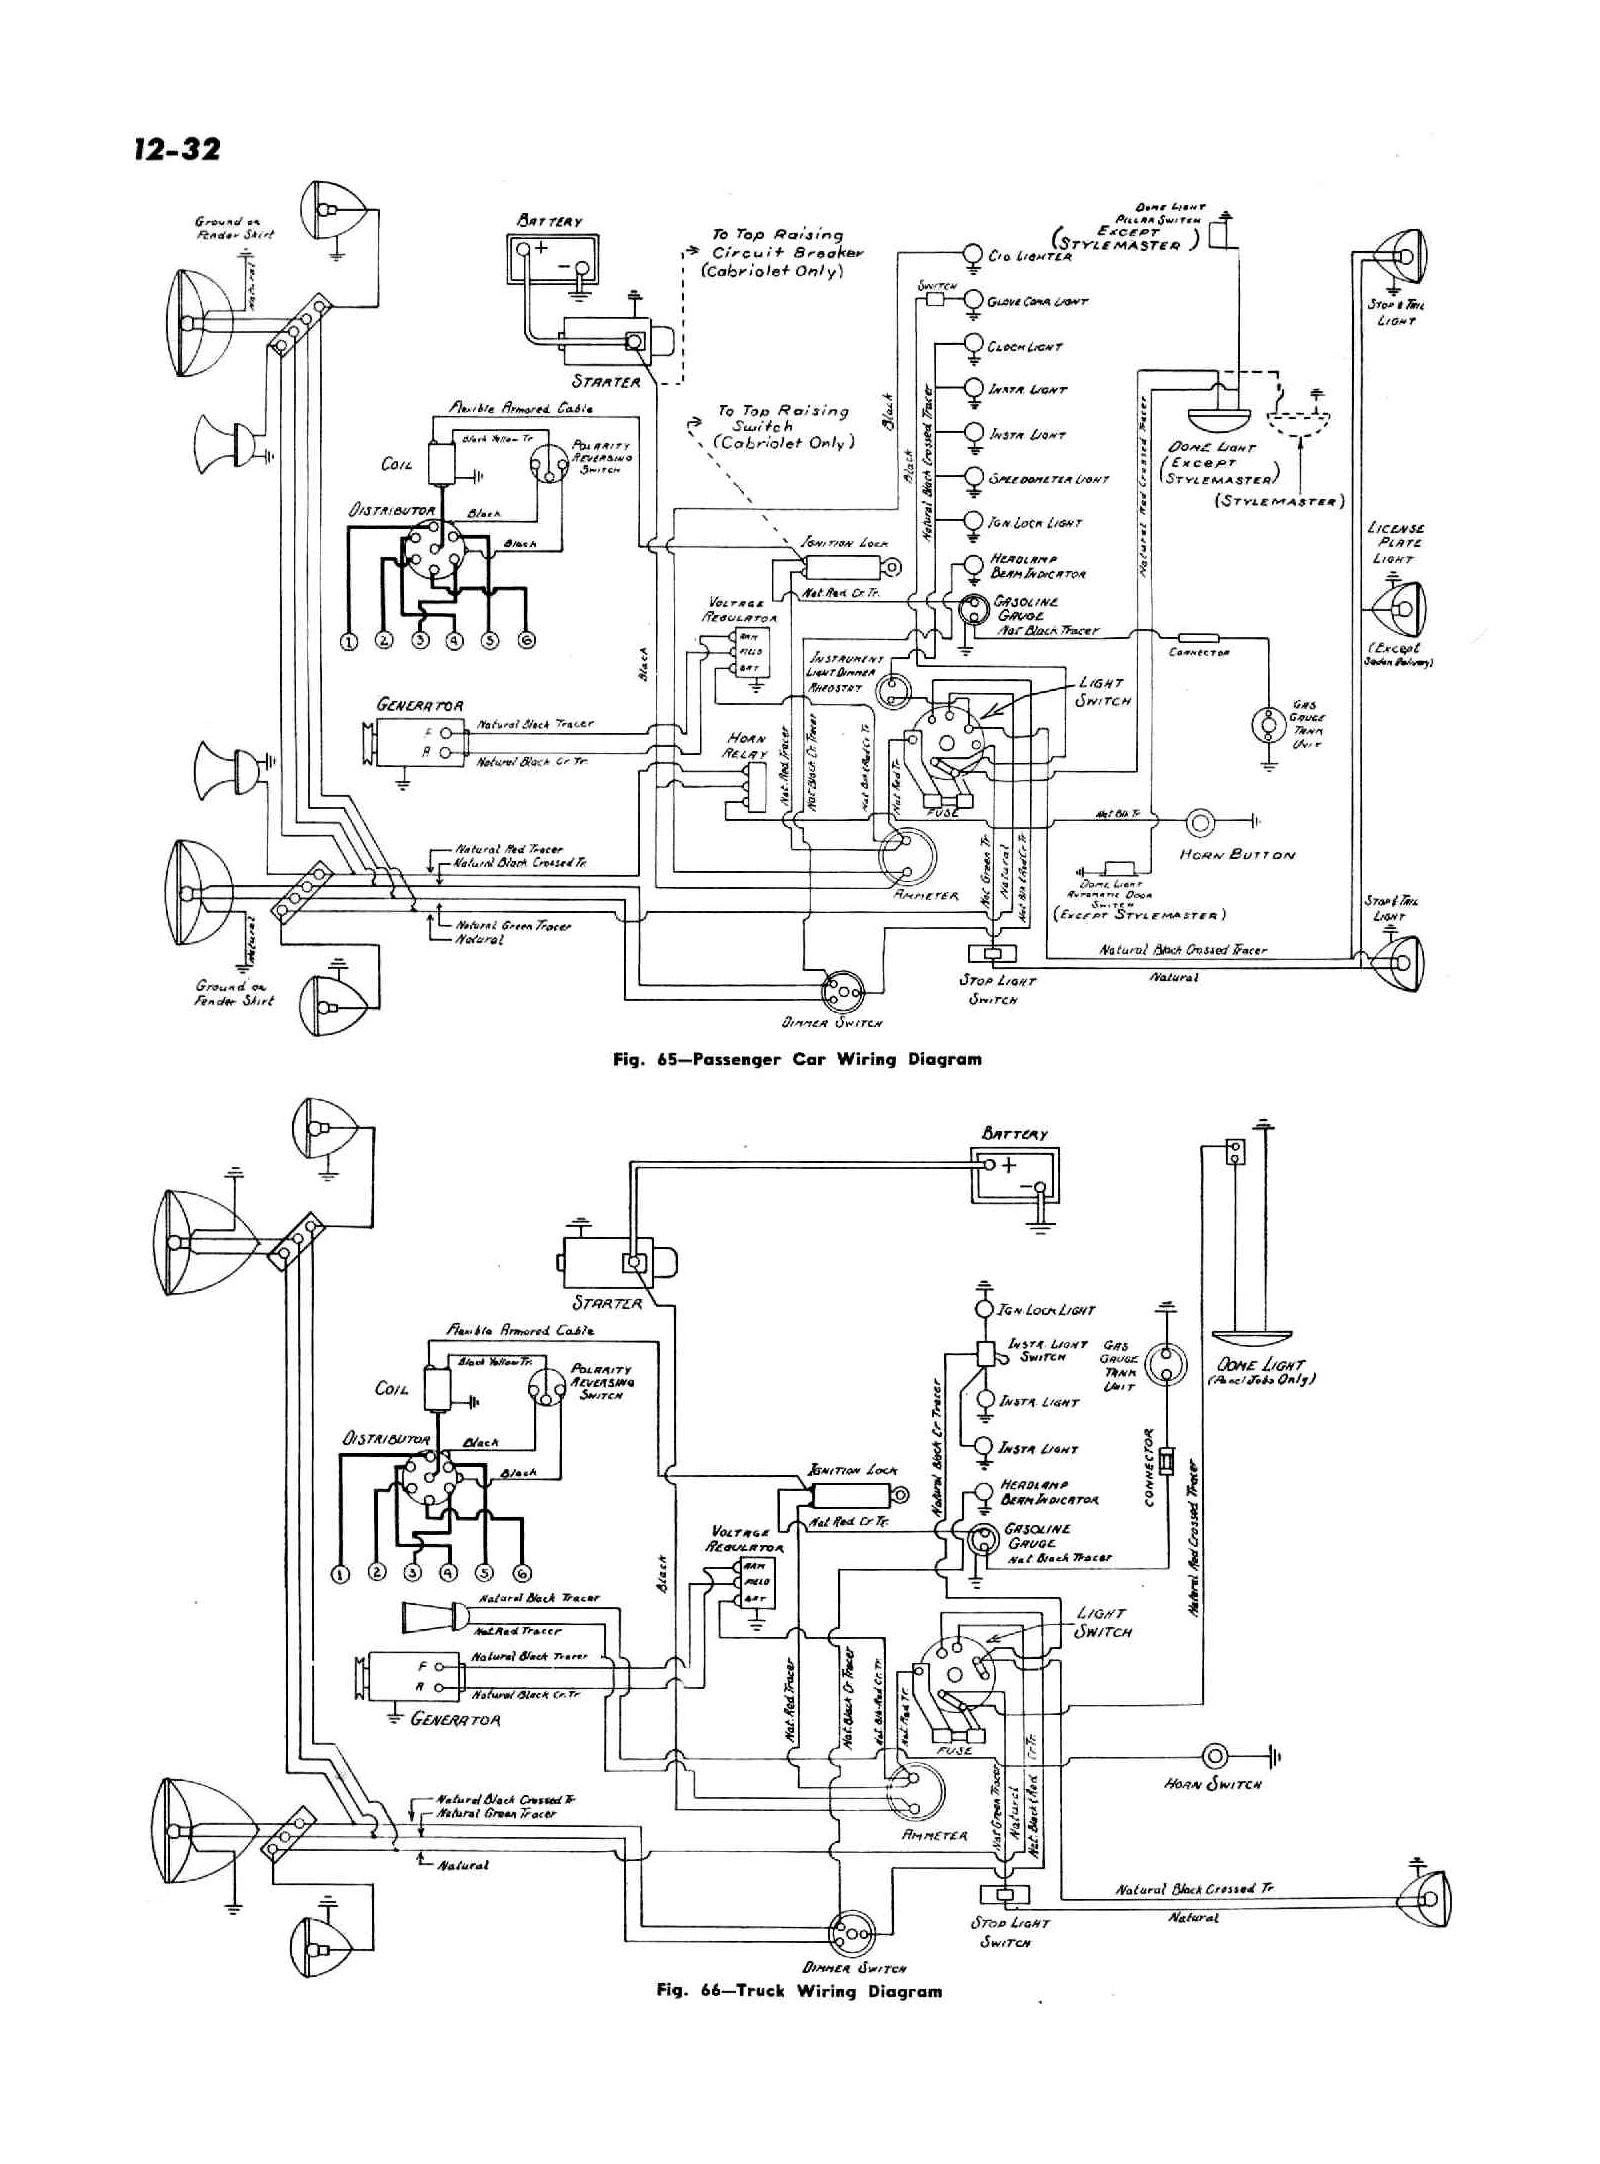 Wiring Diagrams for Chevy Trucks Wiring Diagrams Of Wiring Diagrams for Chevy Trucks